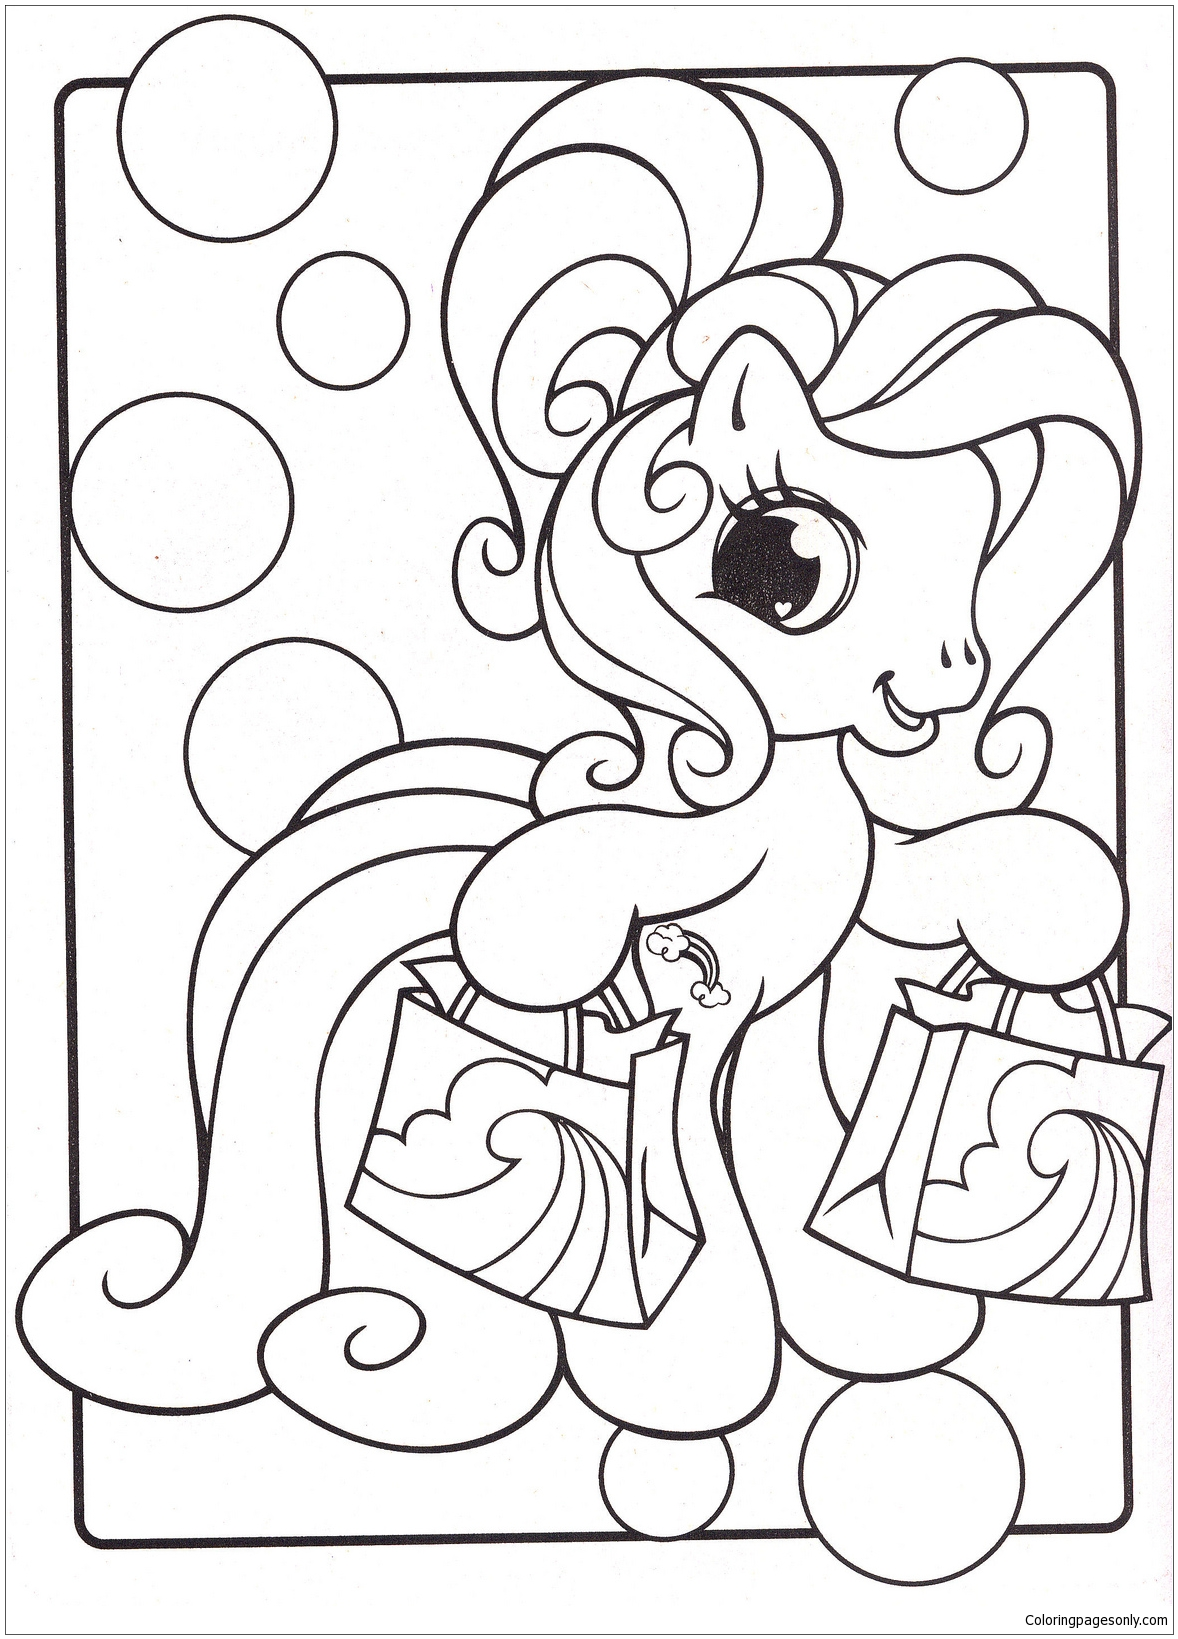 New My Little Pony Coloring Page Free Coloring Pages Online